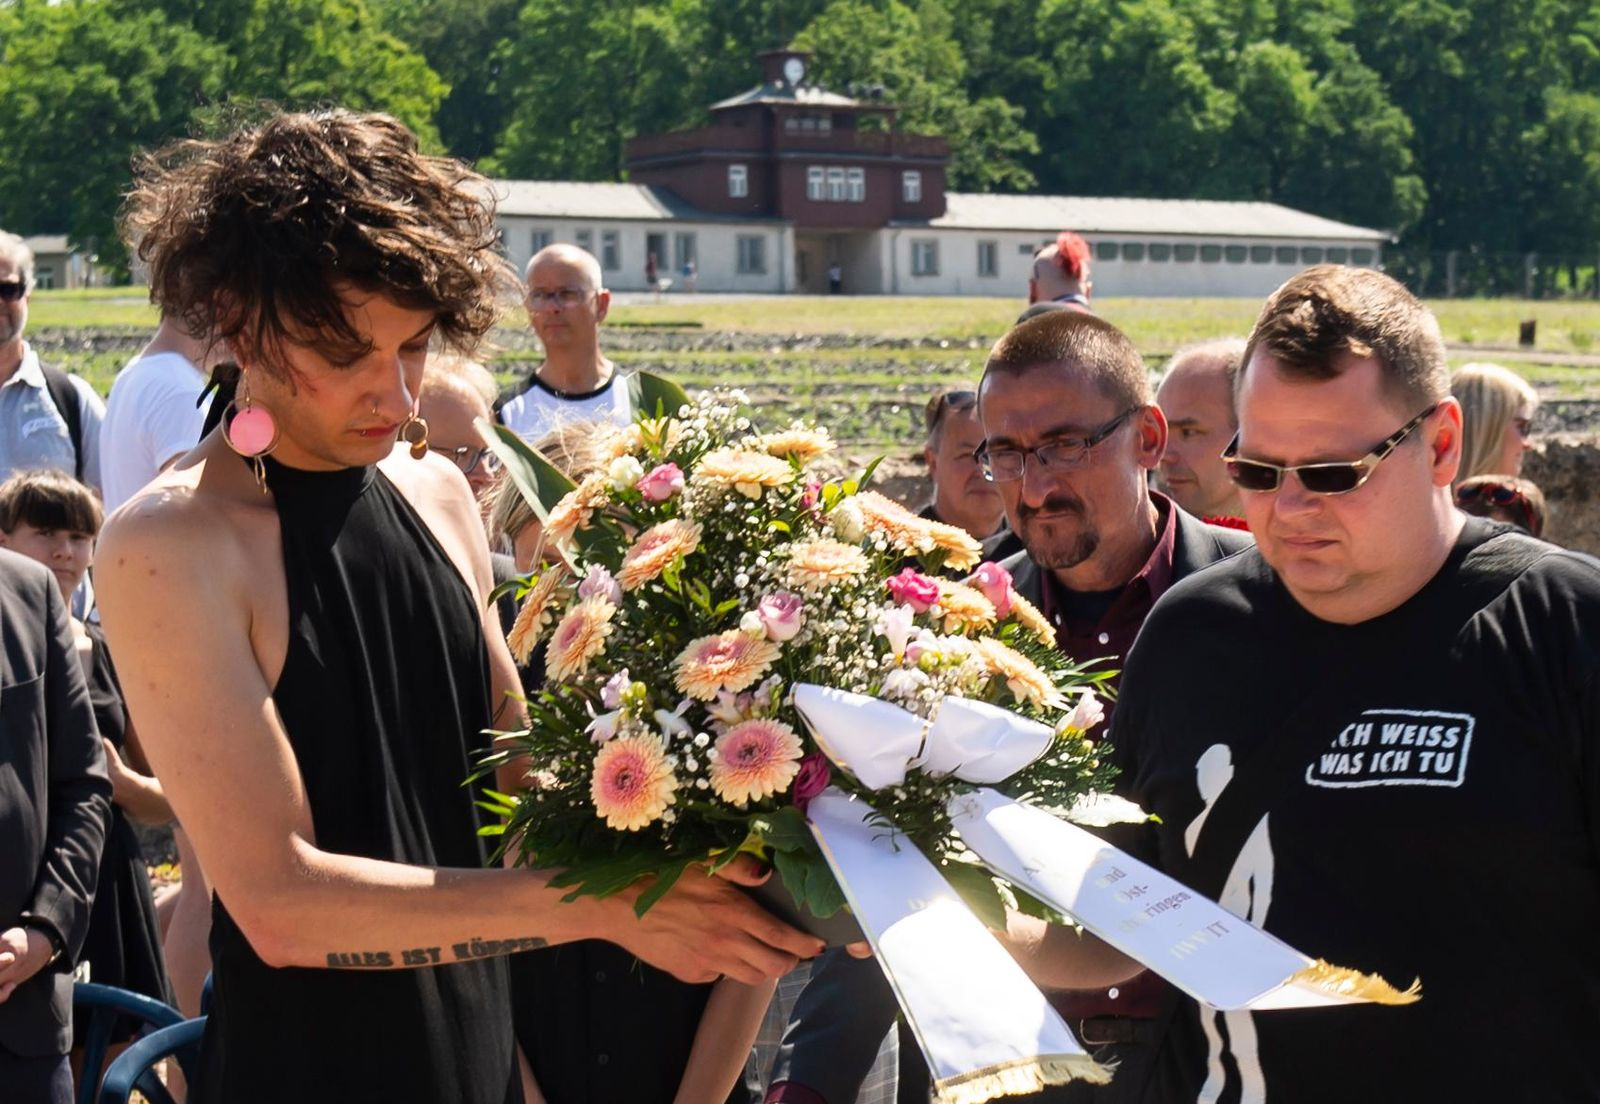 People lay a wreath in remembrance for prisoners assigned a pink triangle in the former Nazi concentration camp Buchenwald within the Christopher Street Day in Weimar, Germany, Sunday, June 23, 2019. There were 650 prisoners assigned a pink triangle in the Buchenwald concentration camp between 1937 and 1945. Many of them lost their lives. (AP Photo/Jens Meyer)